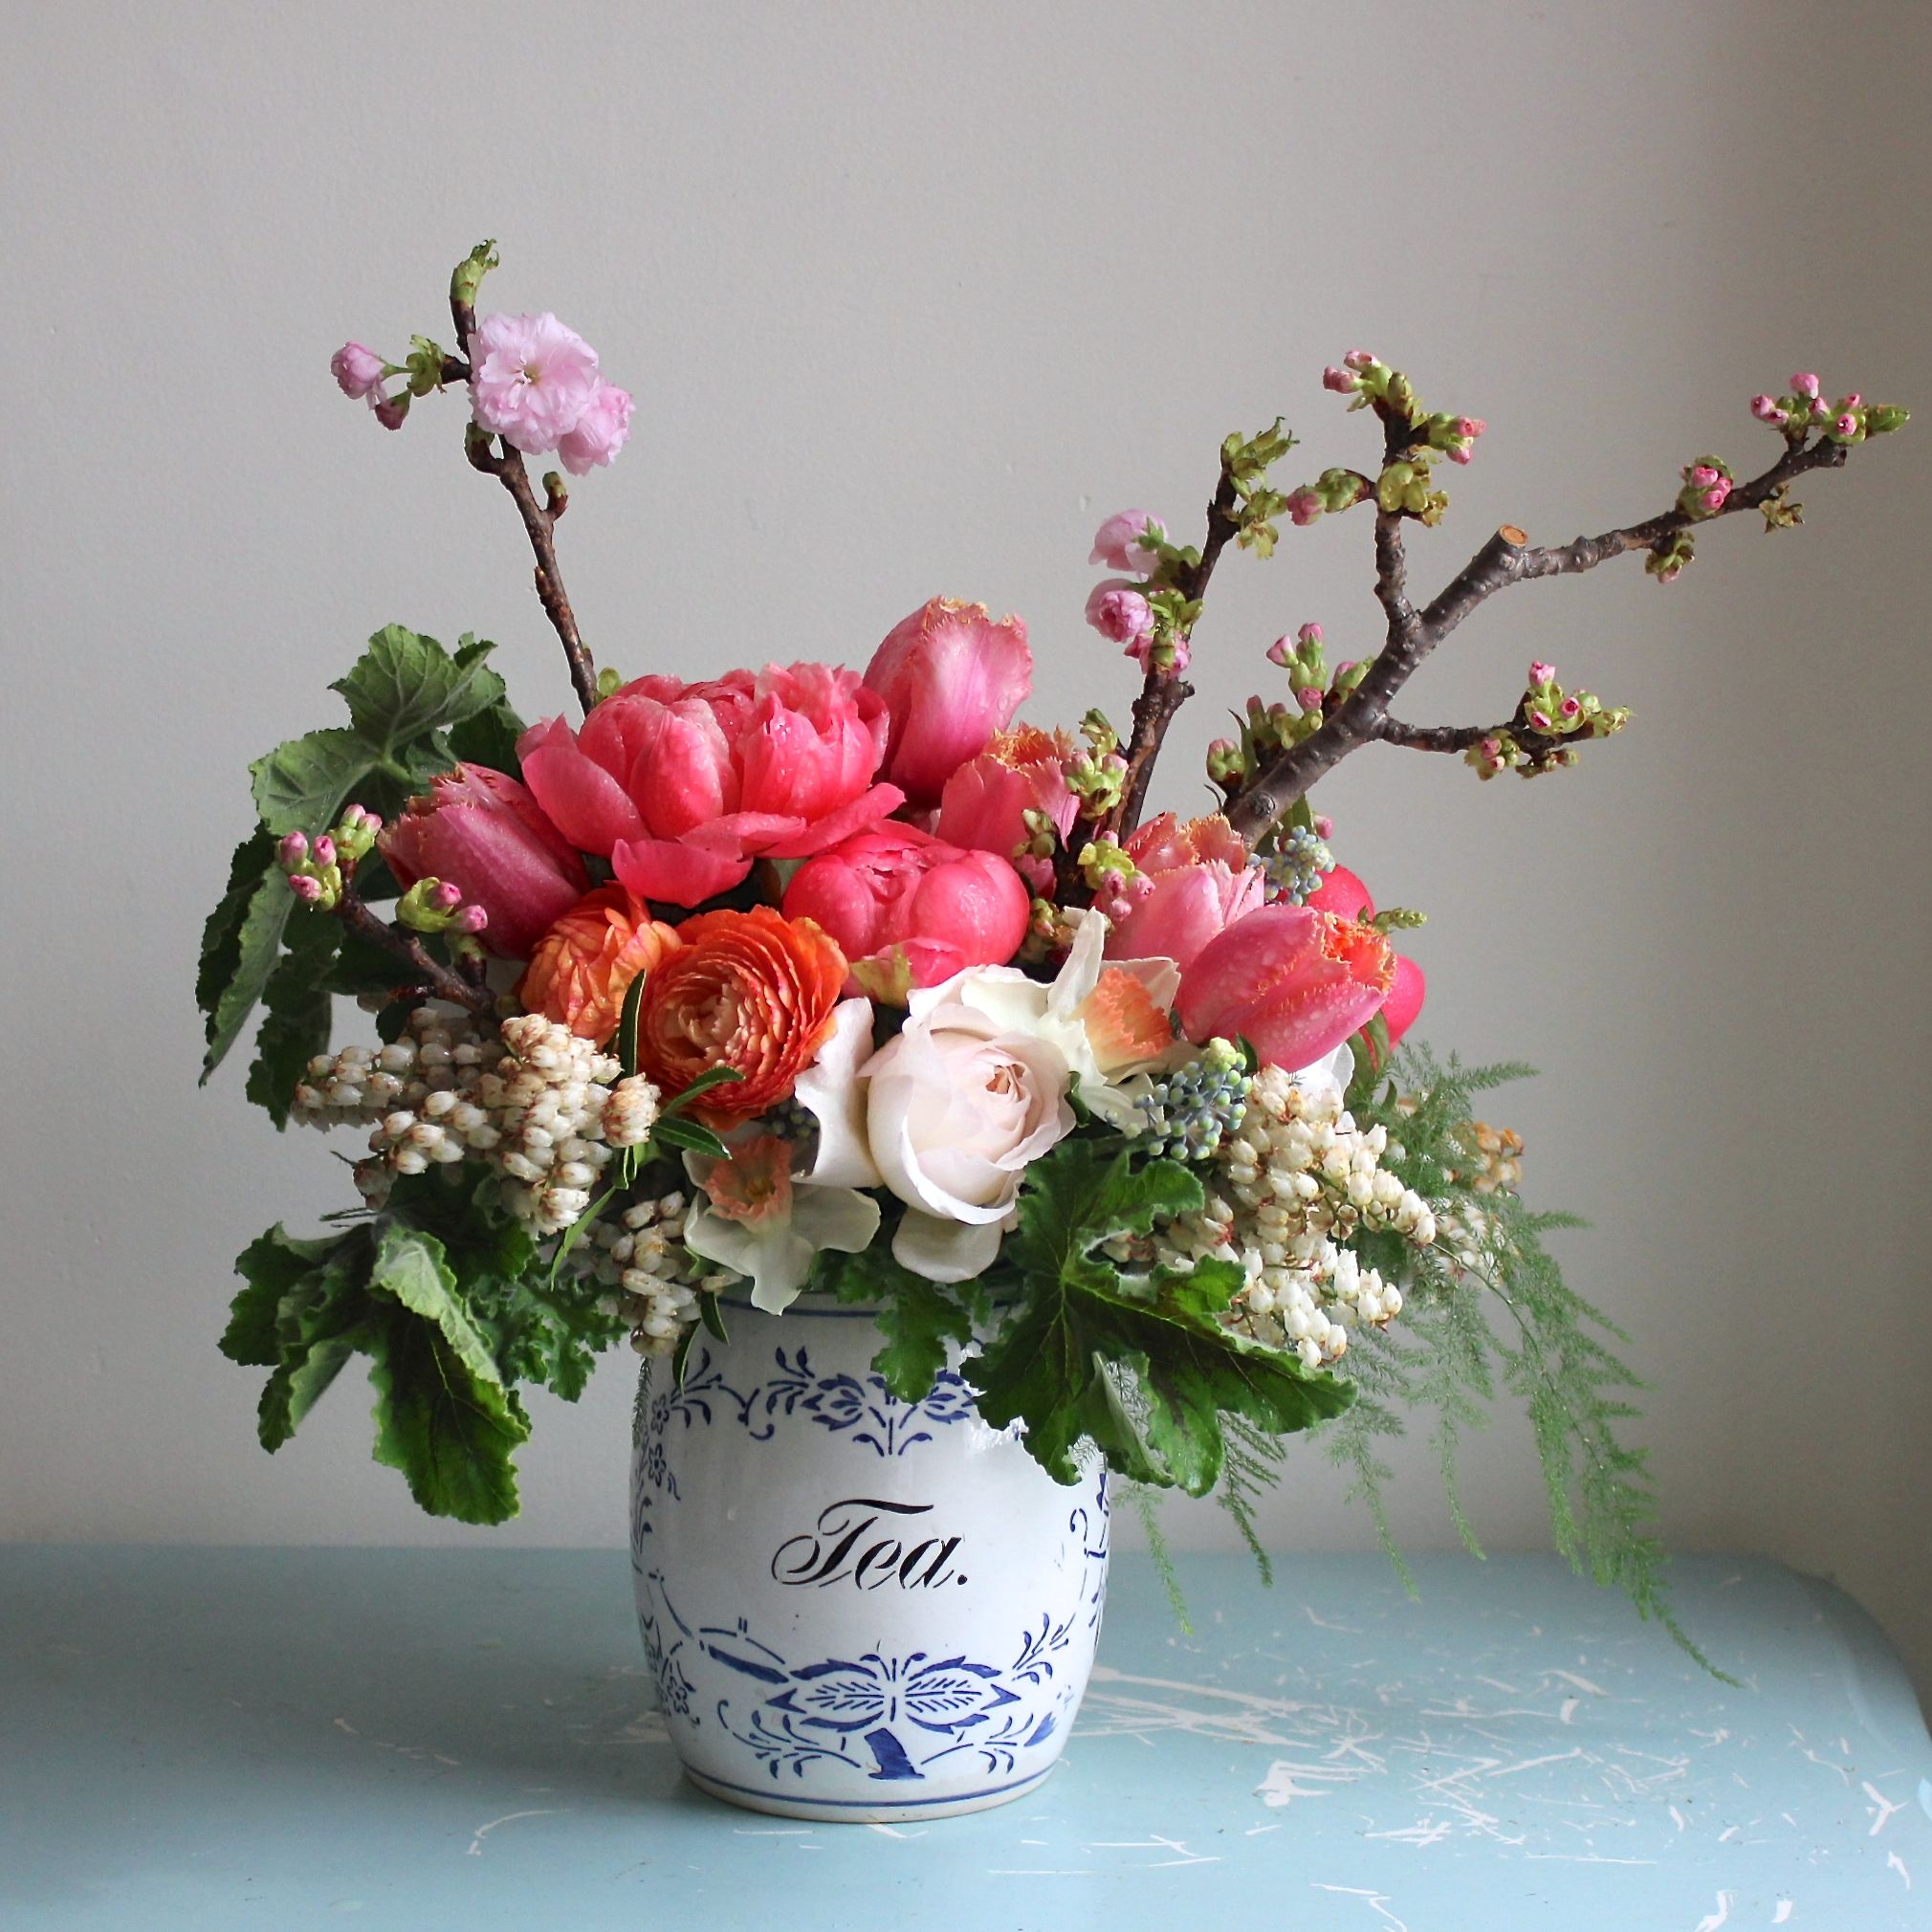 Spring Floral Arrangement By Sachi Rose Includes Cherry